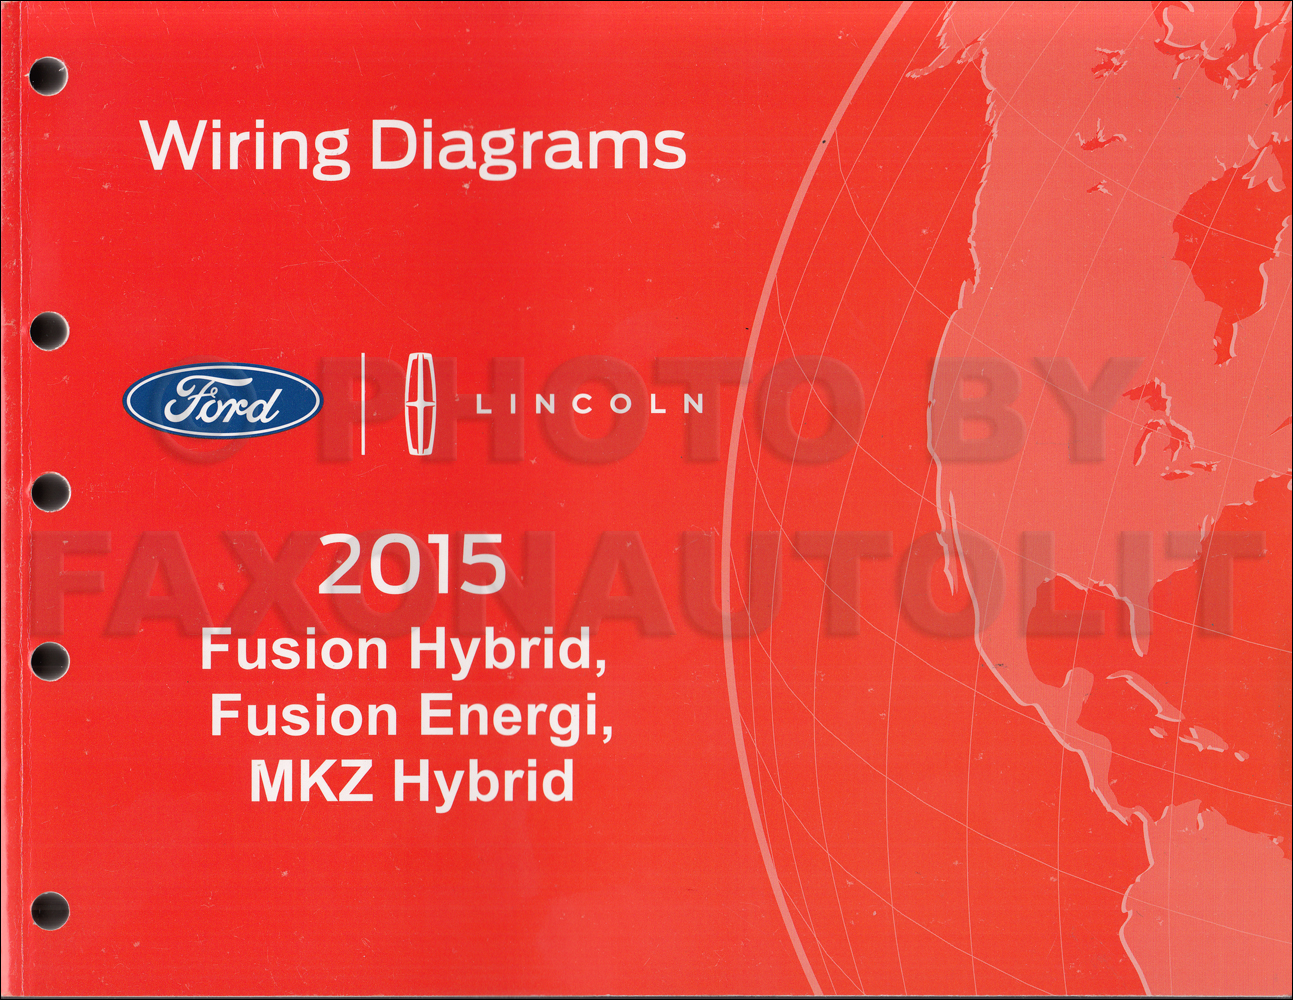 2015 Ford Fusion Energi Hybrid Lincoln Mkz Hybrid Wiring Diagram Manual Original